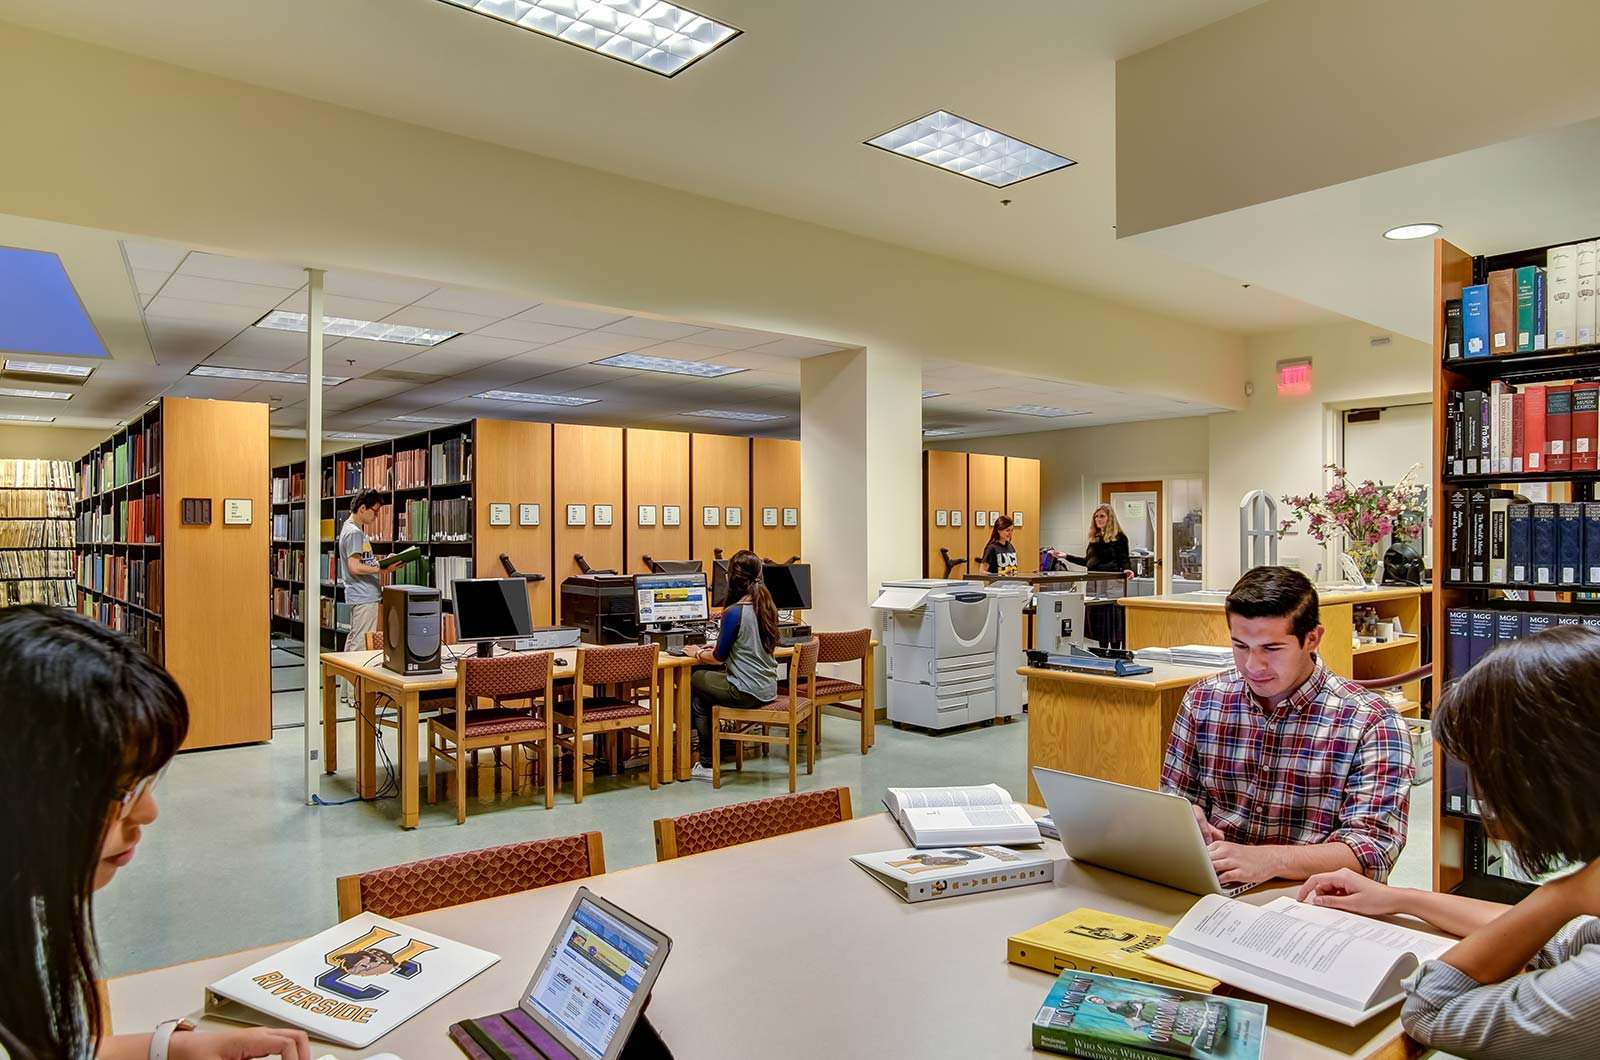 Library-At-A-University-College-Virtual-Tours-Virtual-tours-for-college-360-tours-360-photography-company-virtual-tour-provider-aerial-drone-photography-service